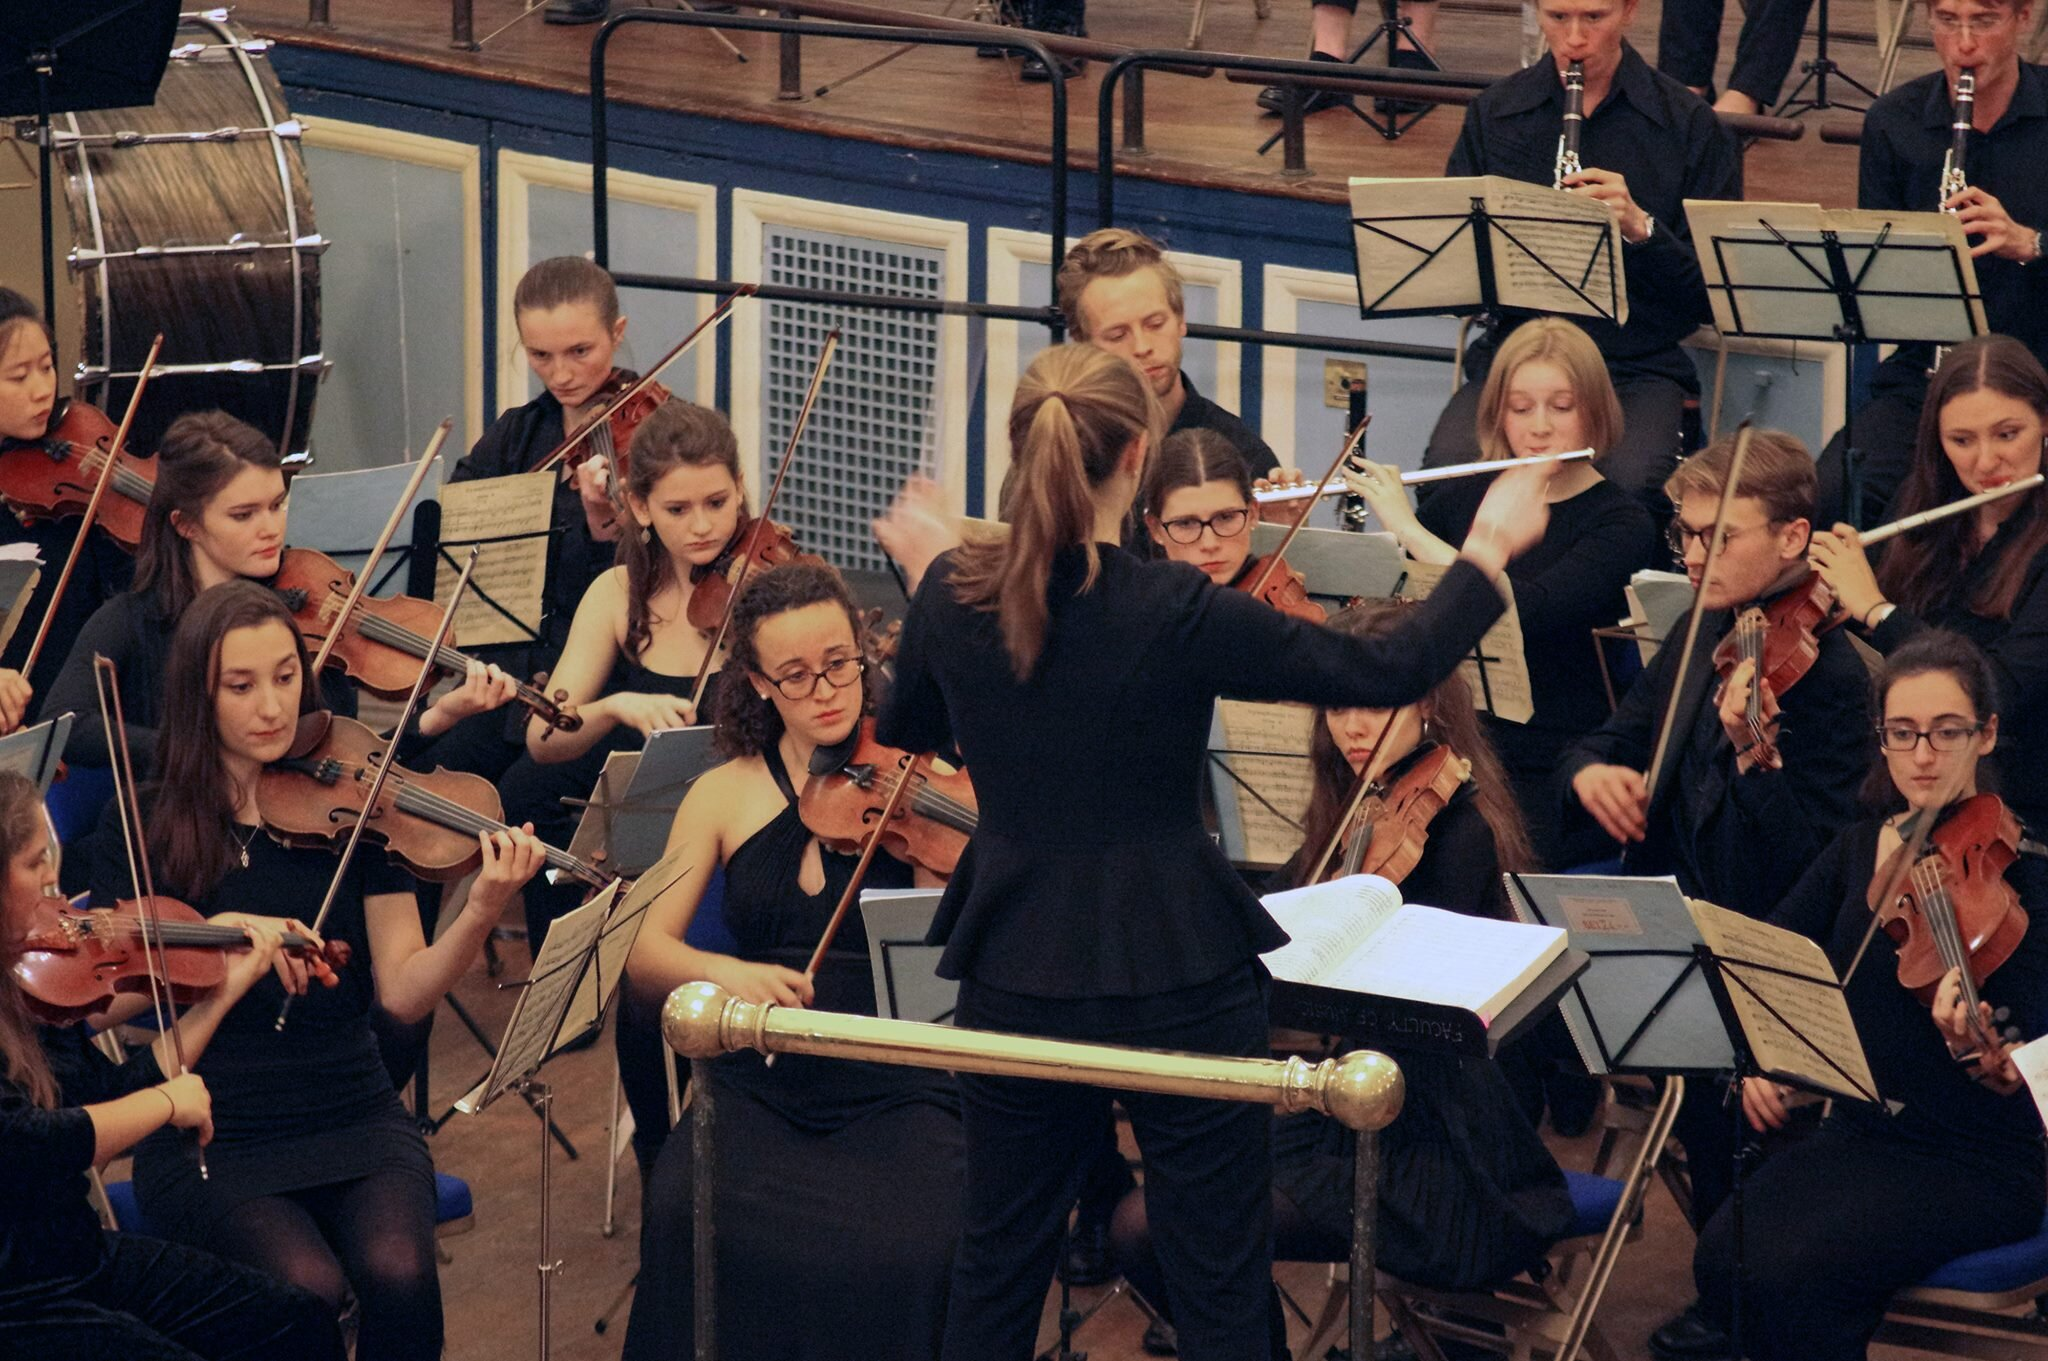 Performing Tchaikovsky's Symphony No. 4 in the Oxford Town Hall. Image credit - Cosima Gillhammer